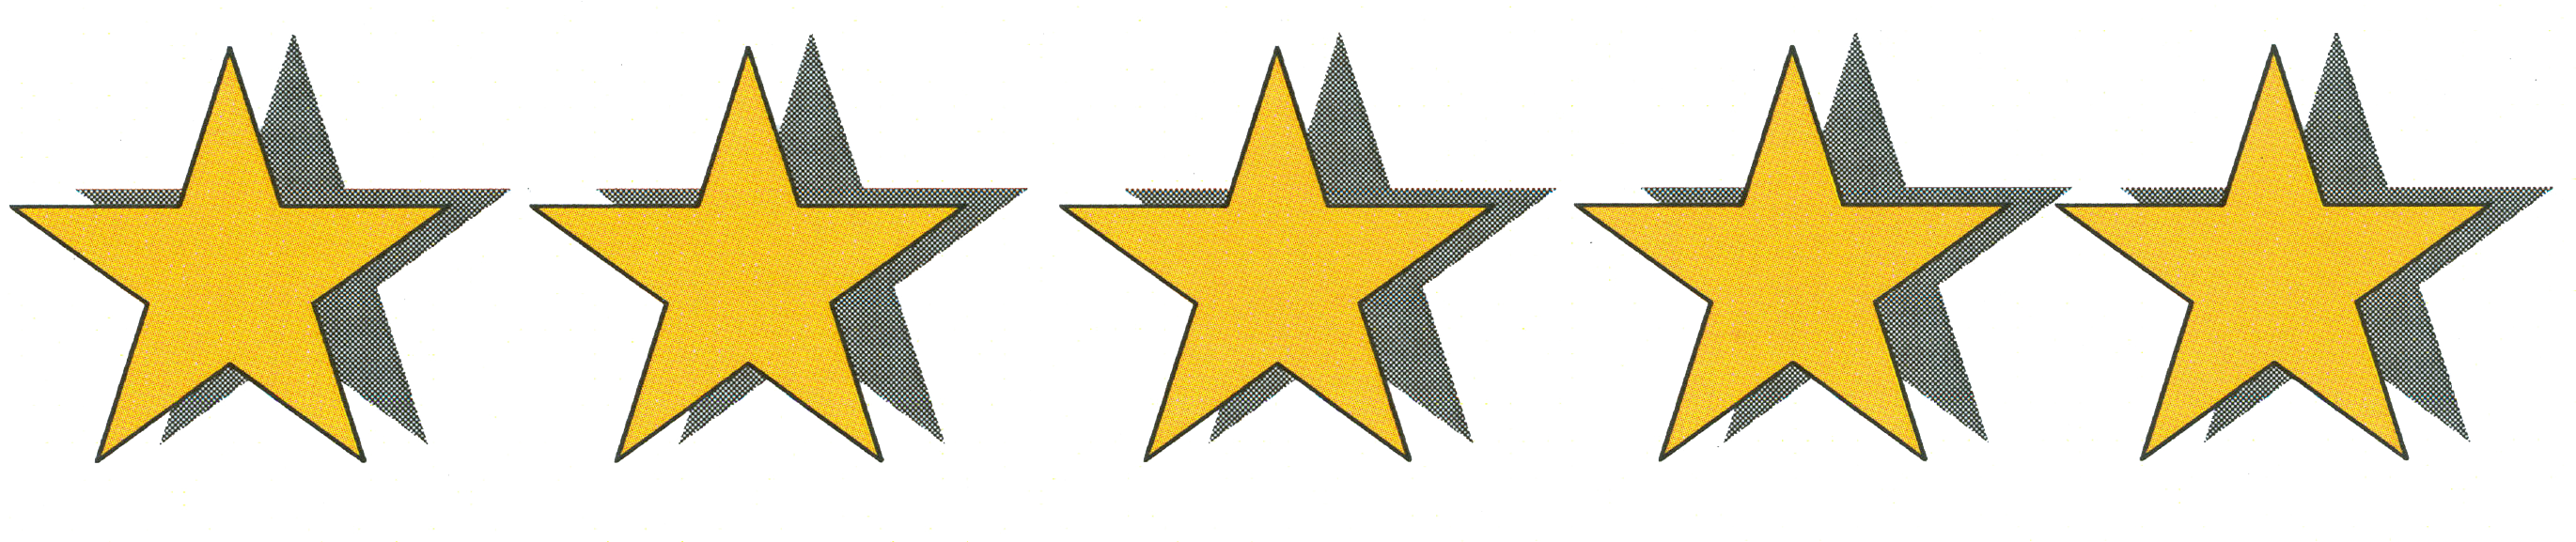 10 5 star png free cliparts that you can download to you computer and ...: www.clipartbest.com/5-star-png